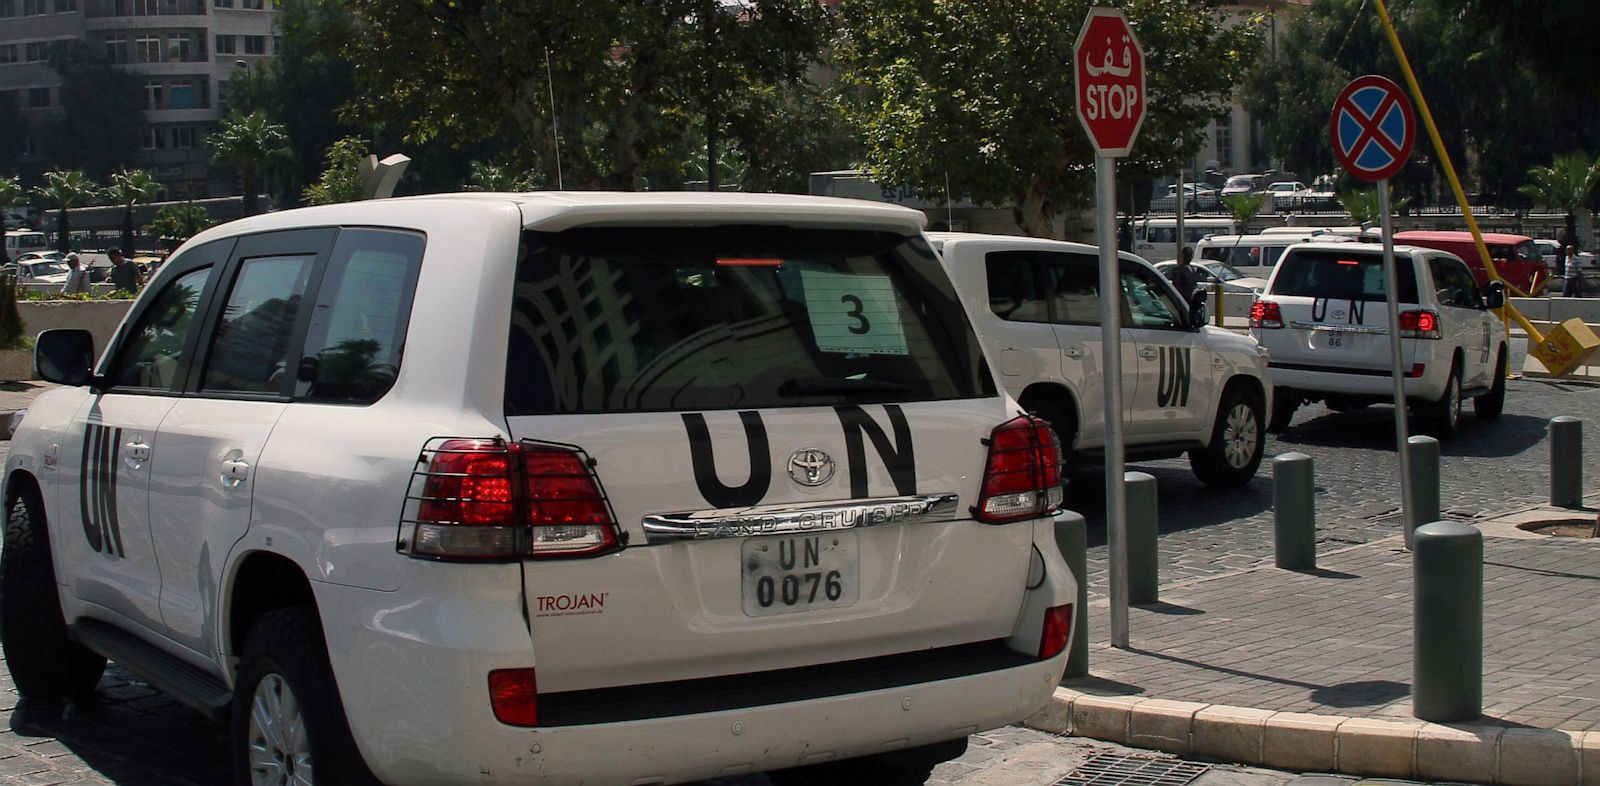 PHOTO: A convoy of United Nations (UN) vehicles leave a hotel in Damascus, Aug. 26, 2013, carrying UN inspectors travelling to the site of a suspected deadly chemical weapon attack the previous week in Ghouta, east of the capital.